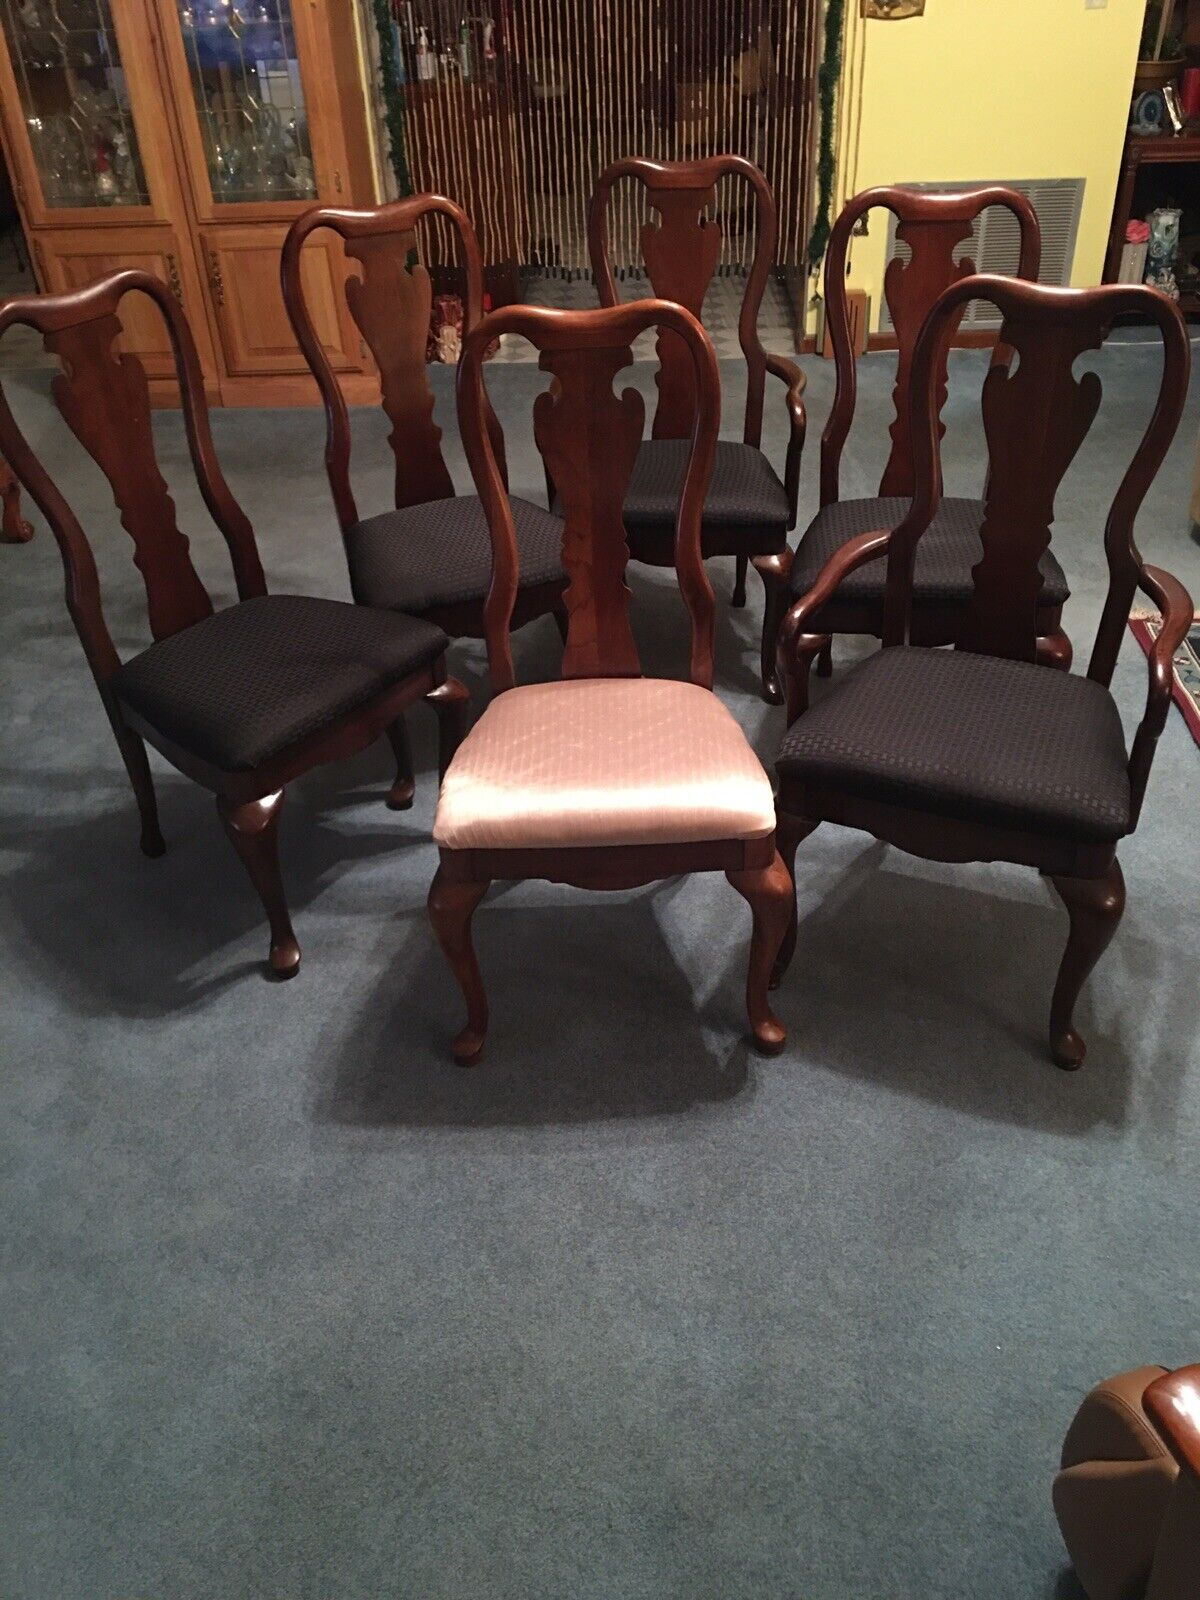 THOMASVILLE FURNITURE Collectors Cherry Dining Side Chair 10121-831 10121-832 - $630.00